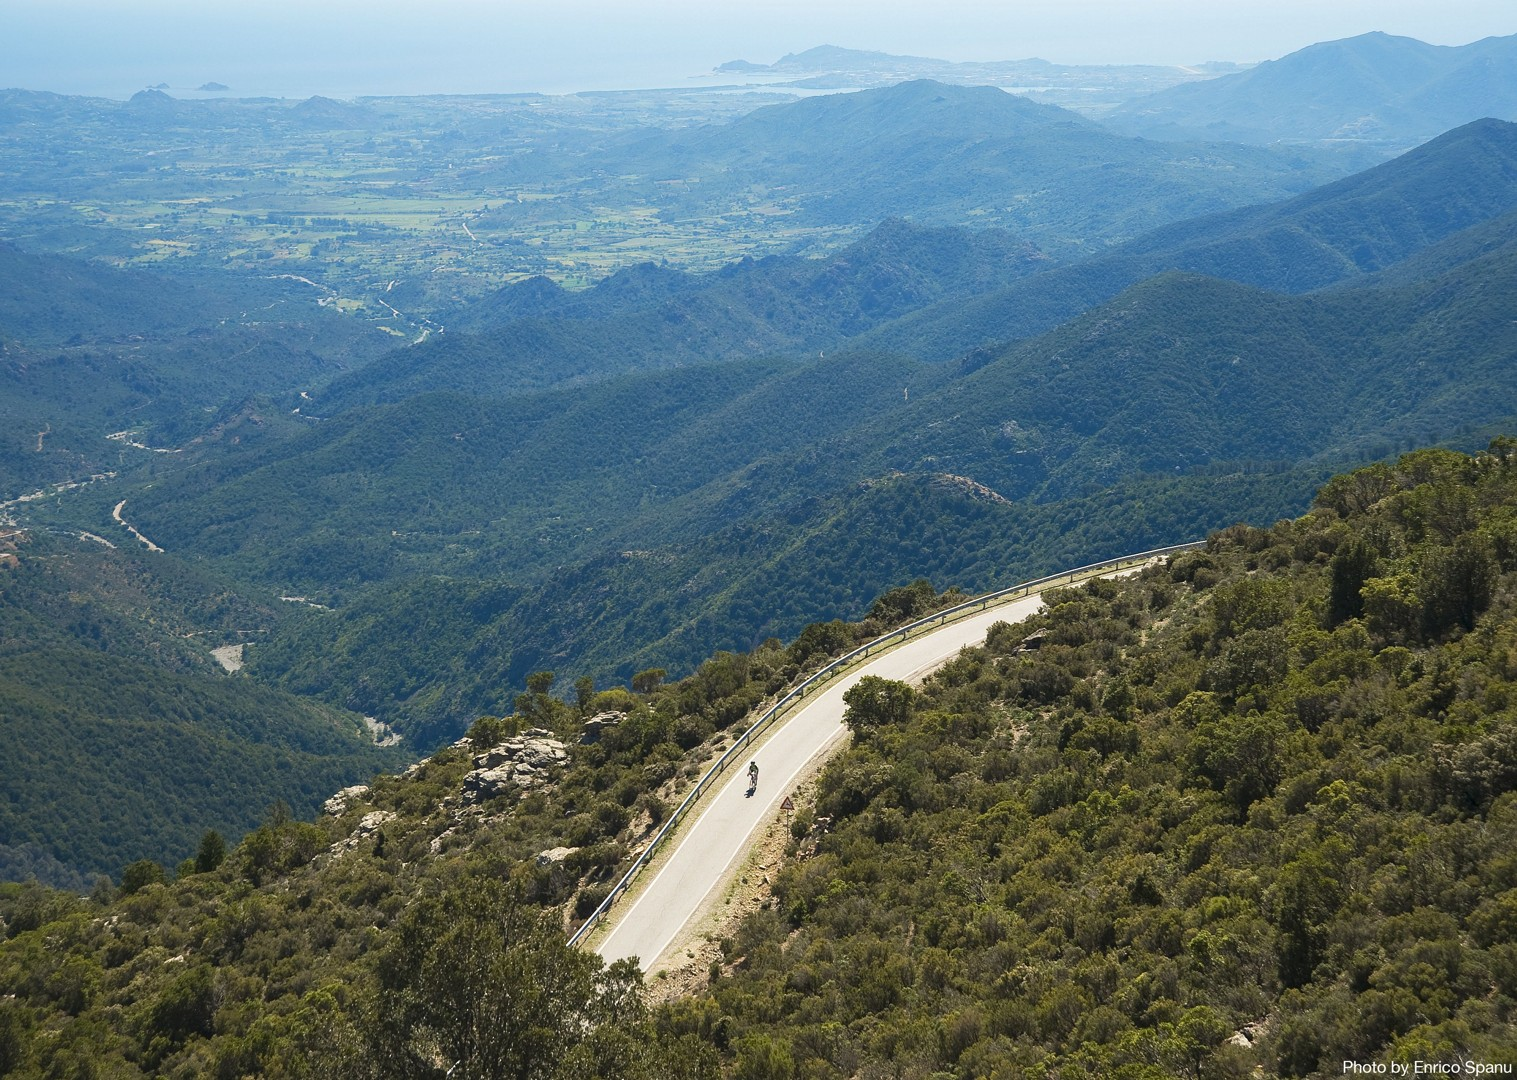 Road-Cycling-Holiday-Italy-Sardinia-Sardinian-Mountains-Mountain-roads.jpg - Italy - Sardinia - Mountain Explorer - Guided Road Cycling Holiday - Road Cycling